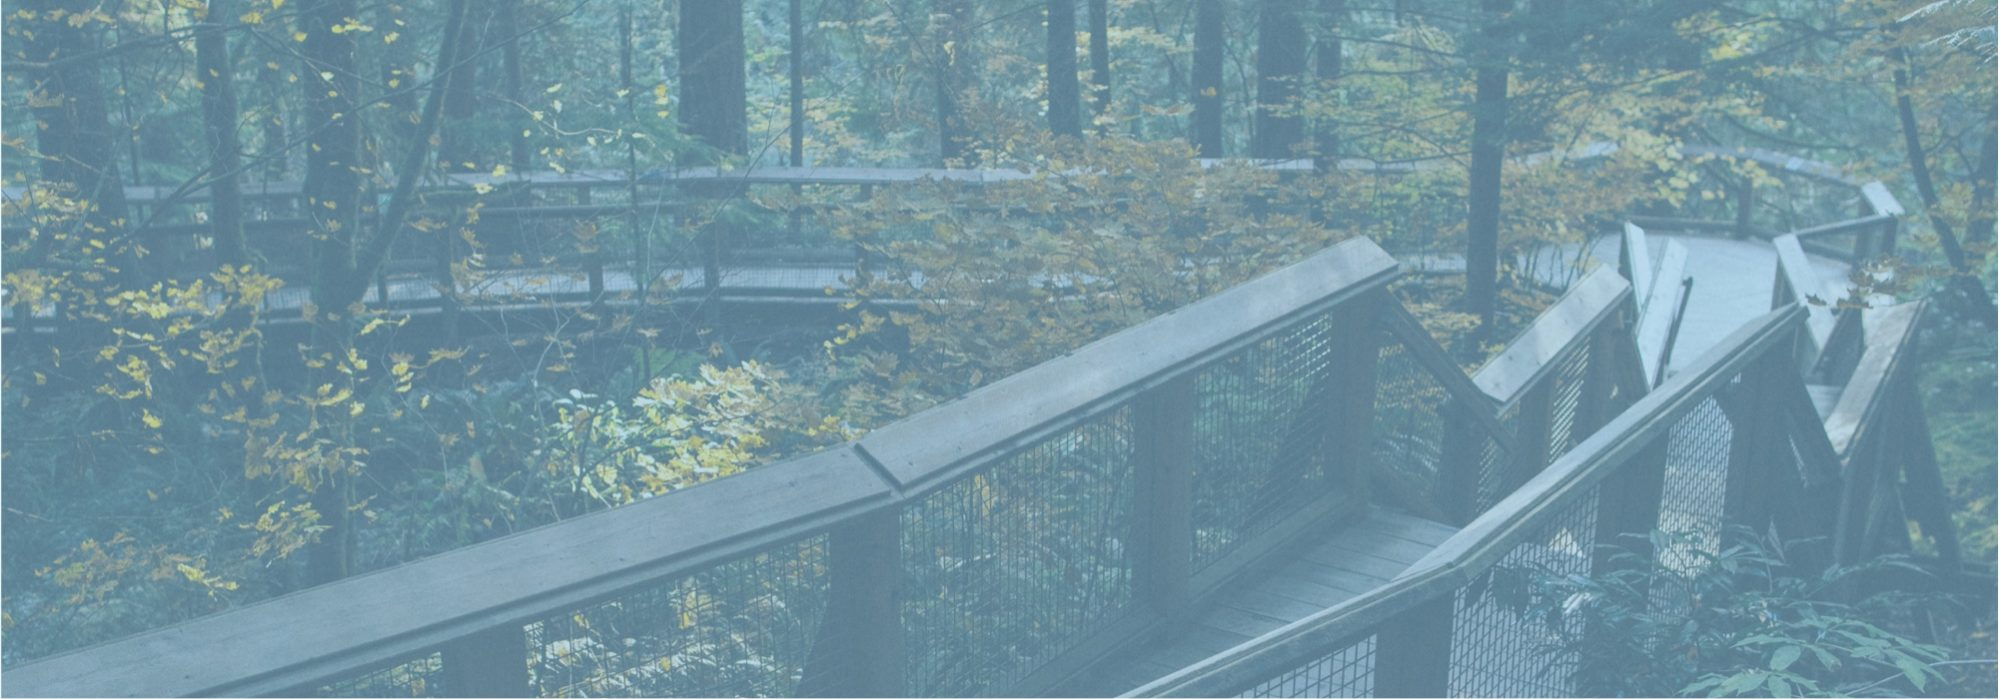 Bridge Suspension Project for Porcupine Mountains at MKC Group